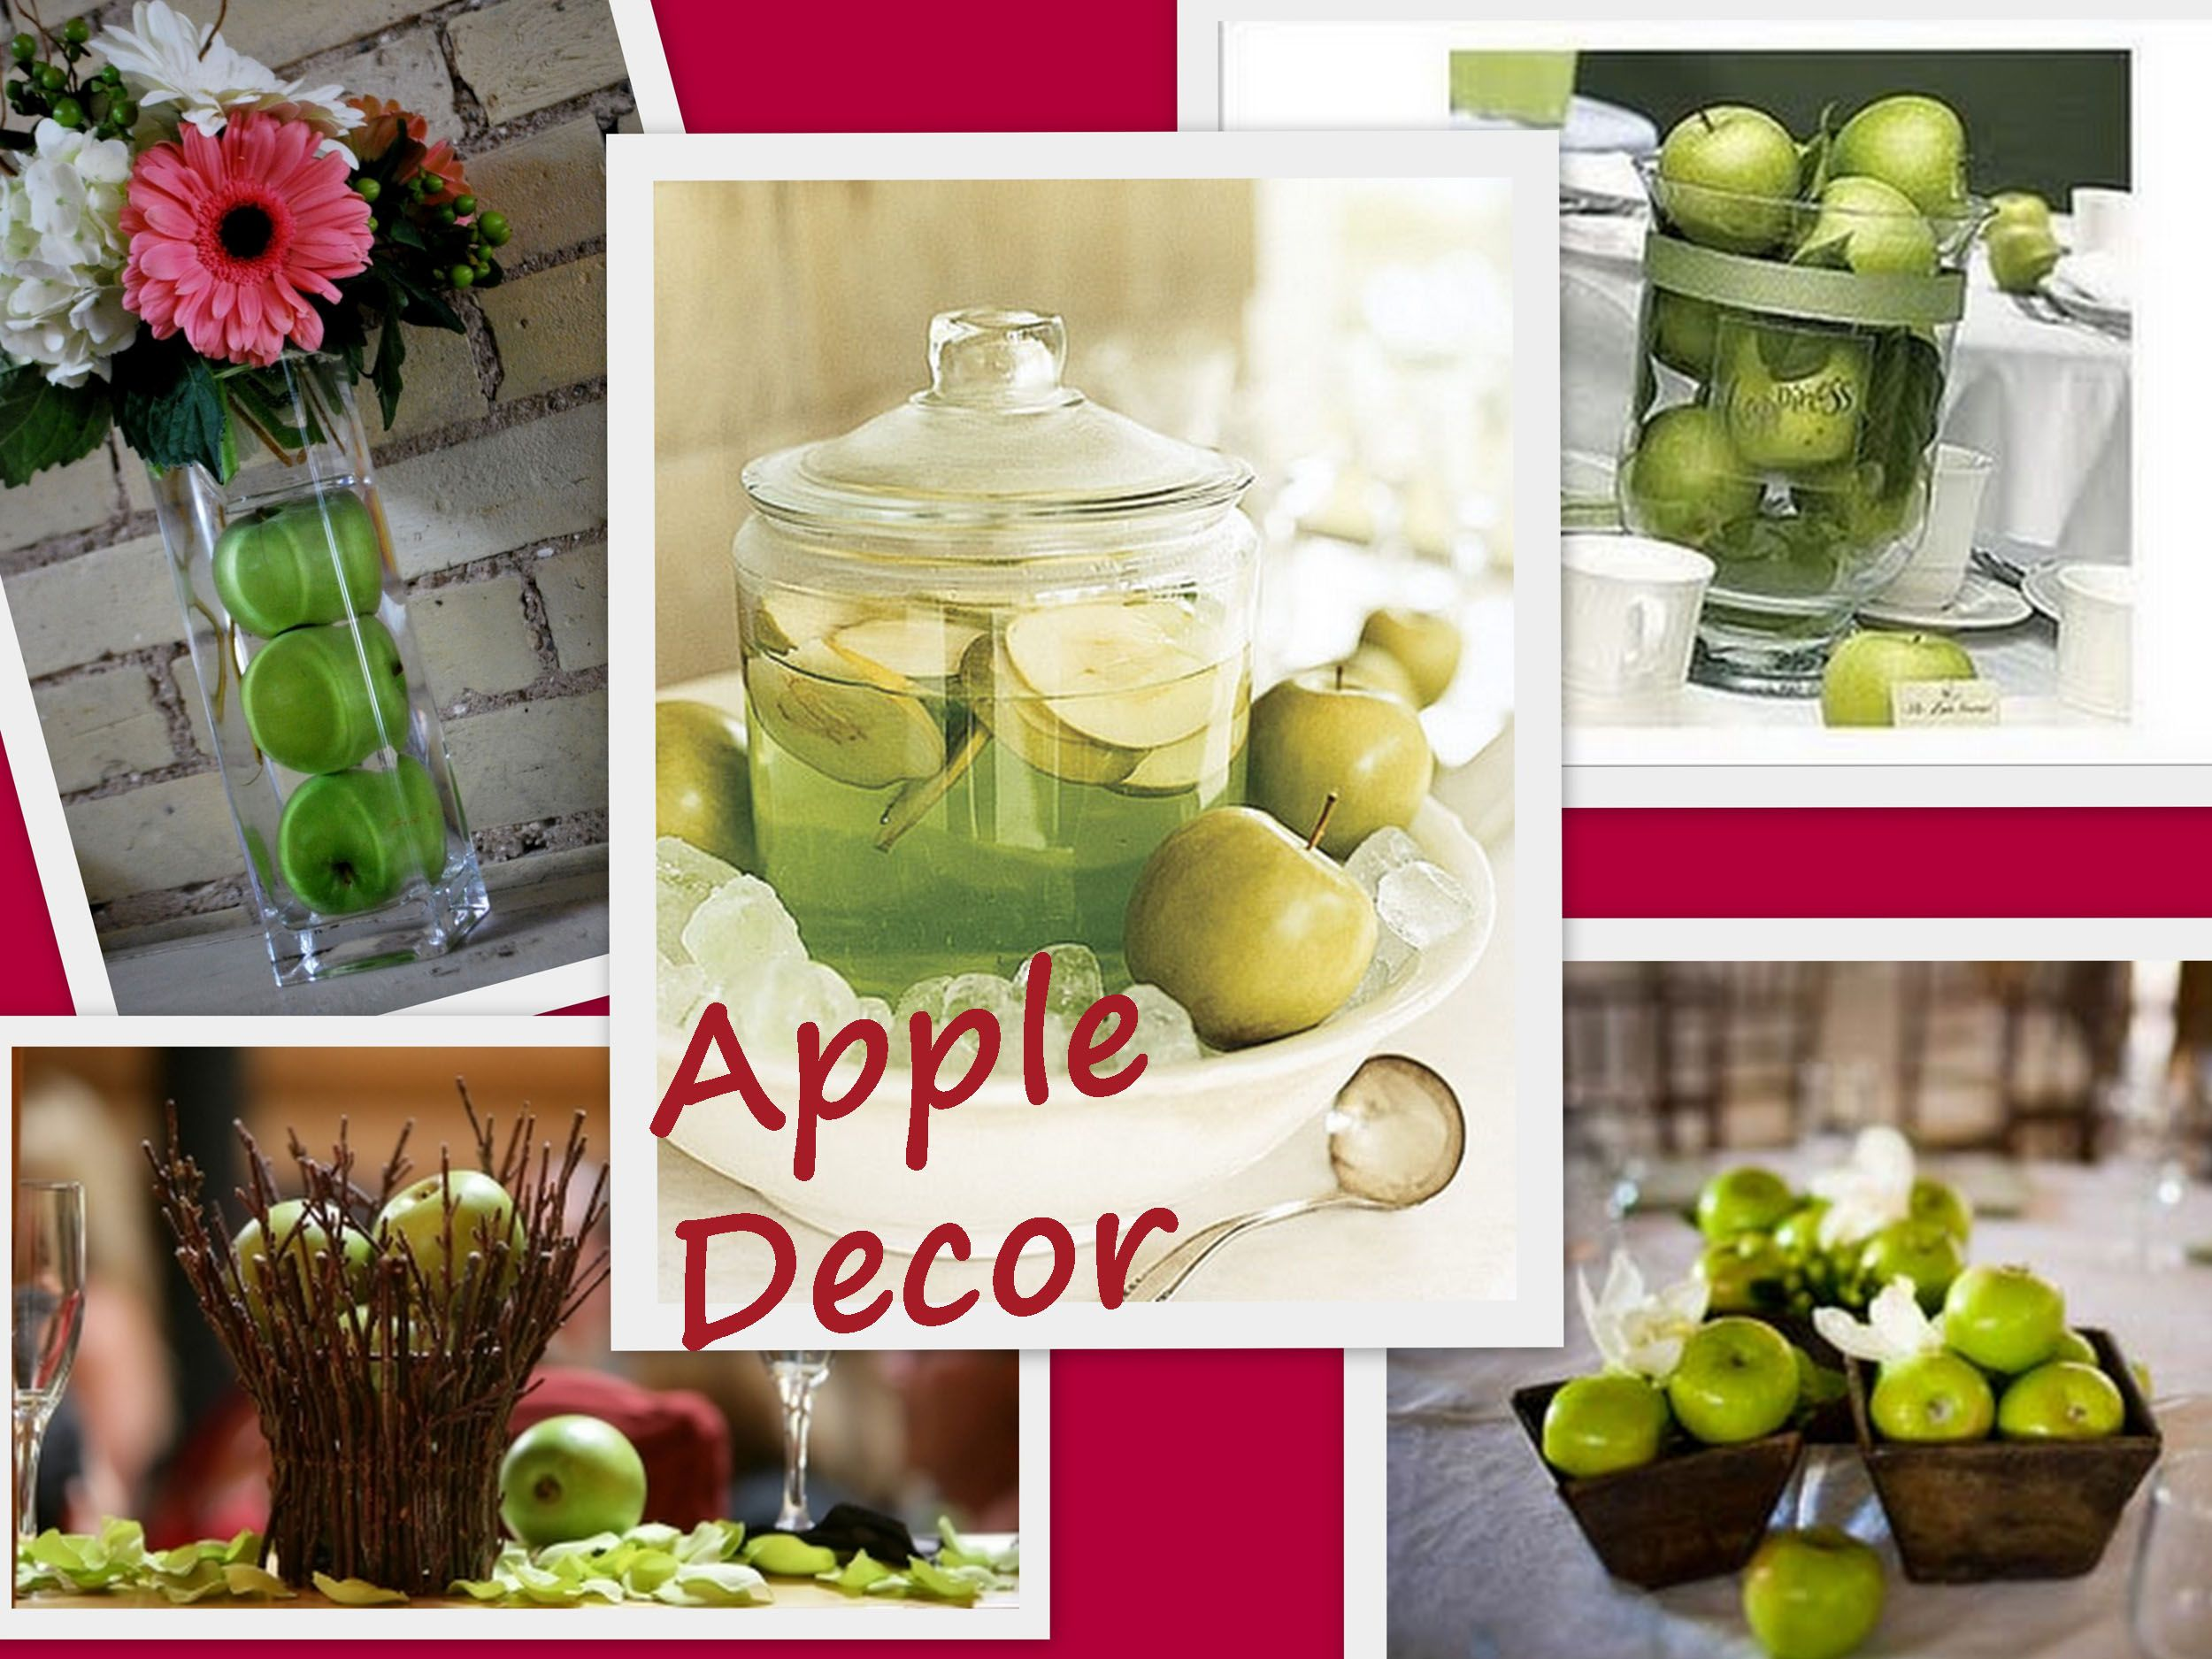 wedding table decorations using apples | apples in basket ...